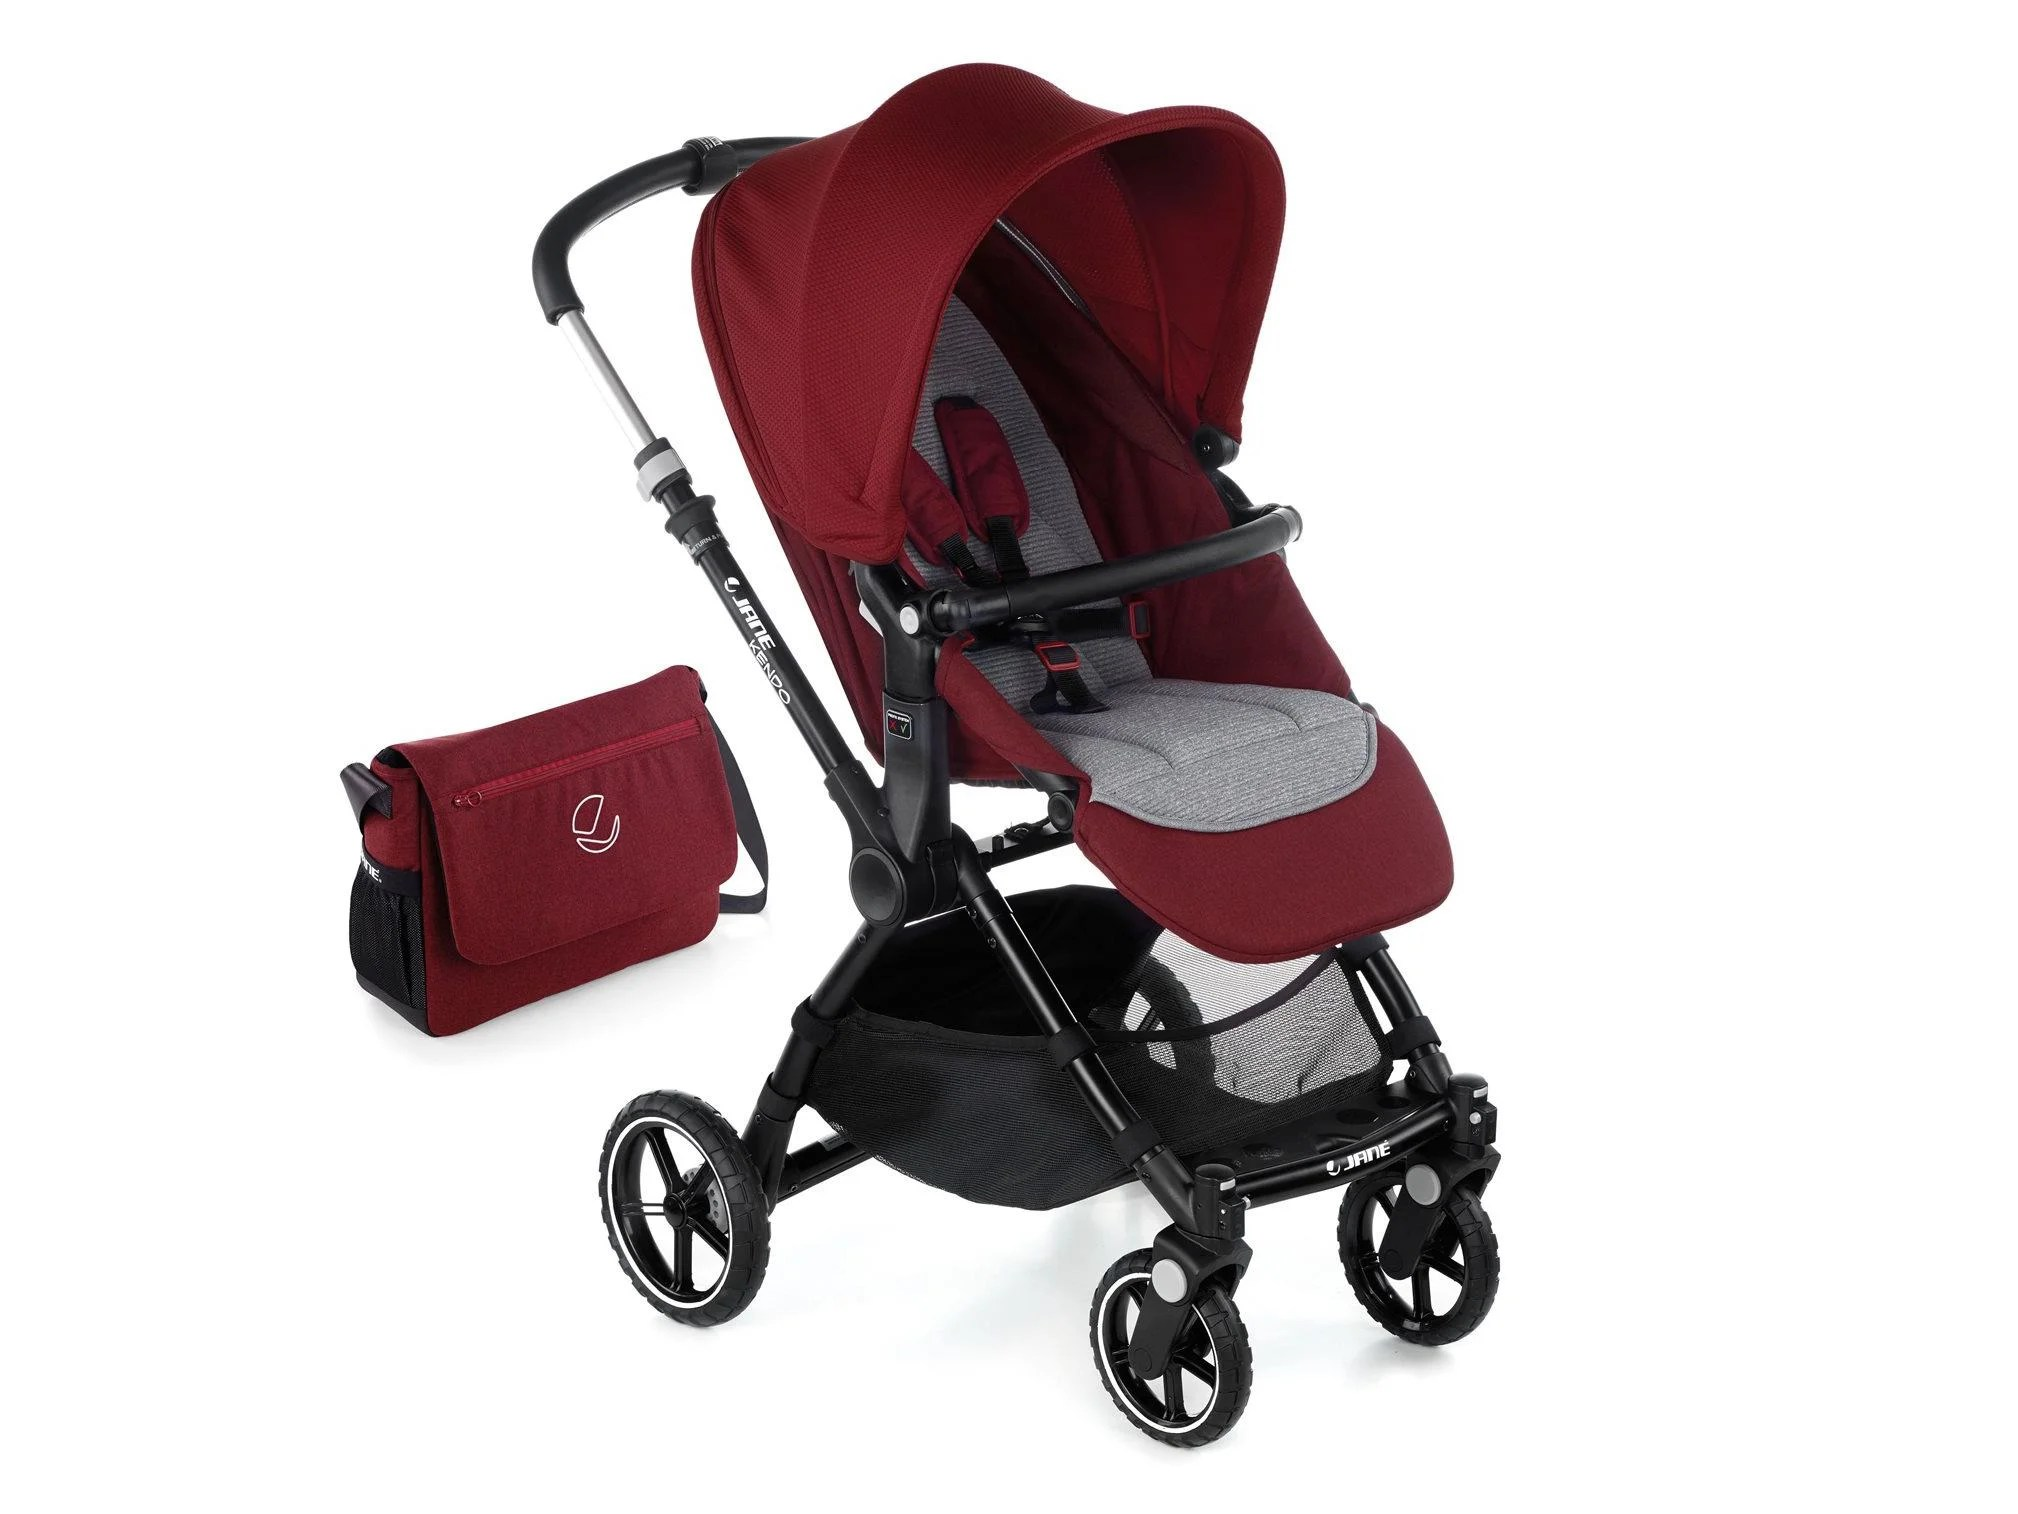 Baby Pushing Pram Youtube Best Pushchairs Choose From Buggies Prams And Strollers